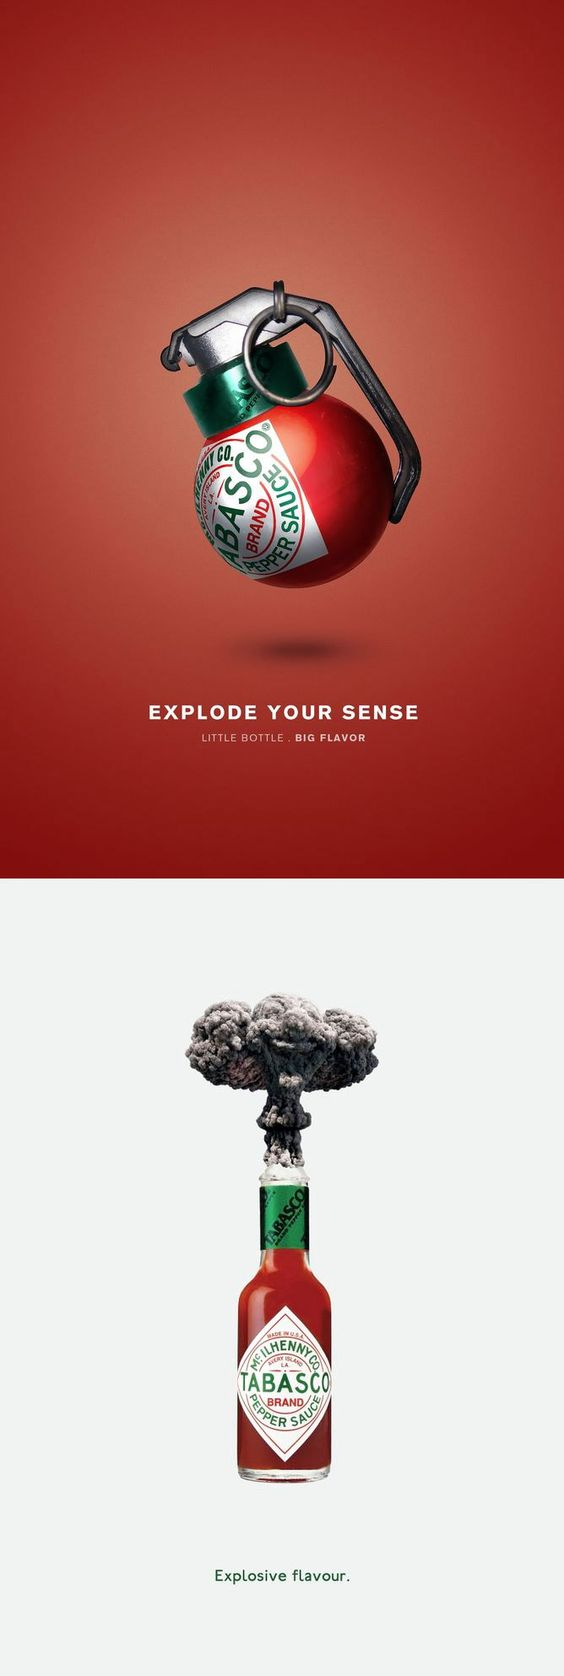 25 really clever and creative print ads